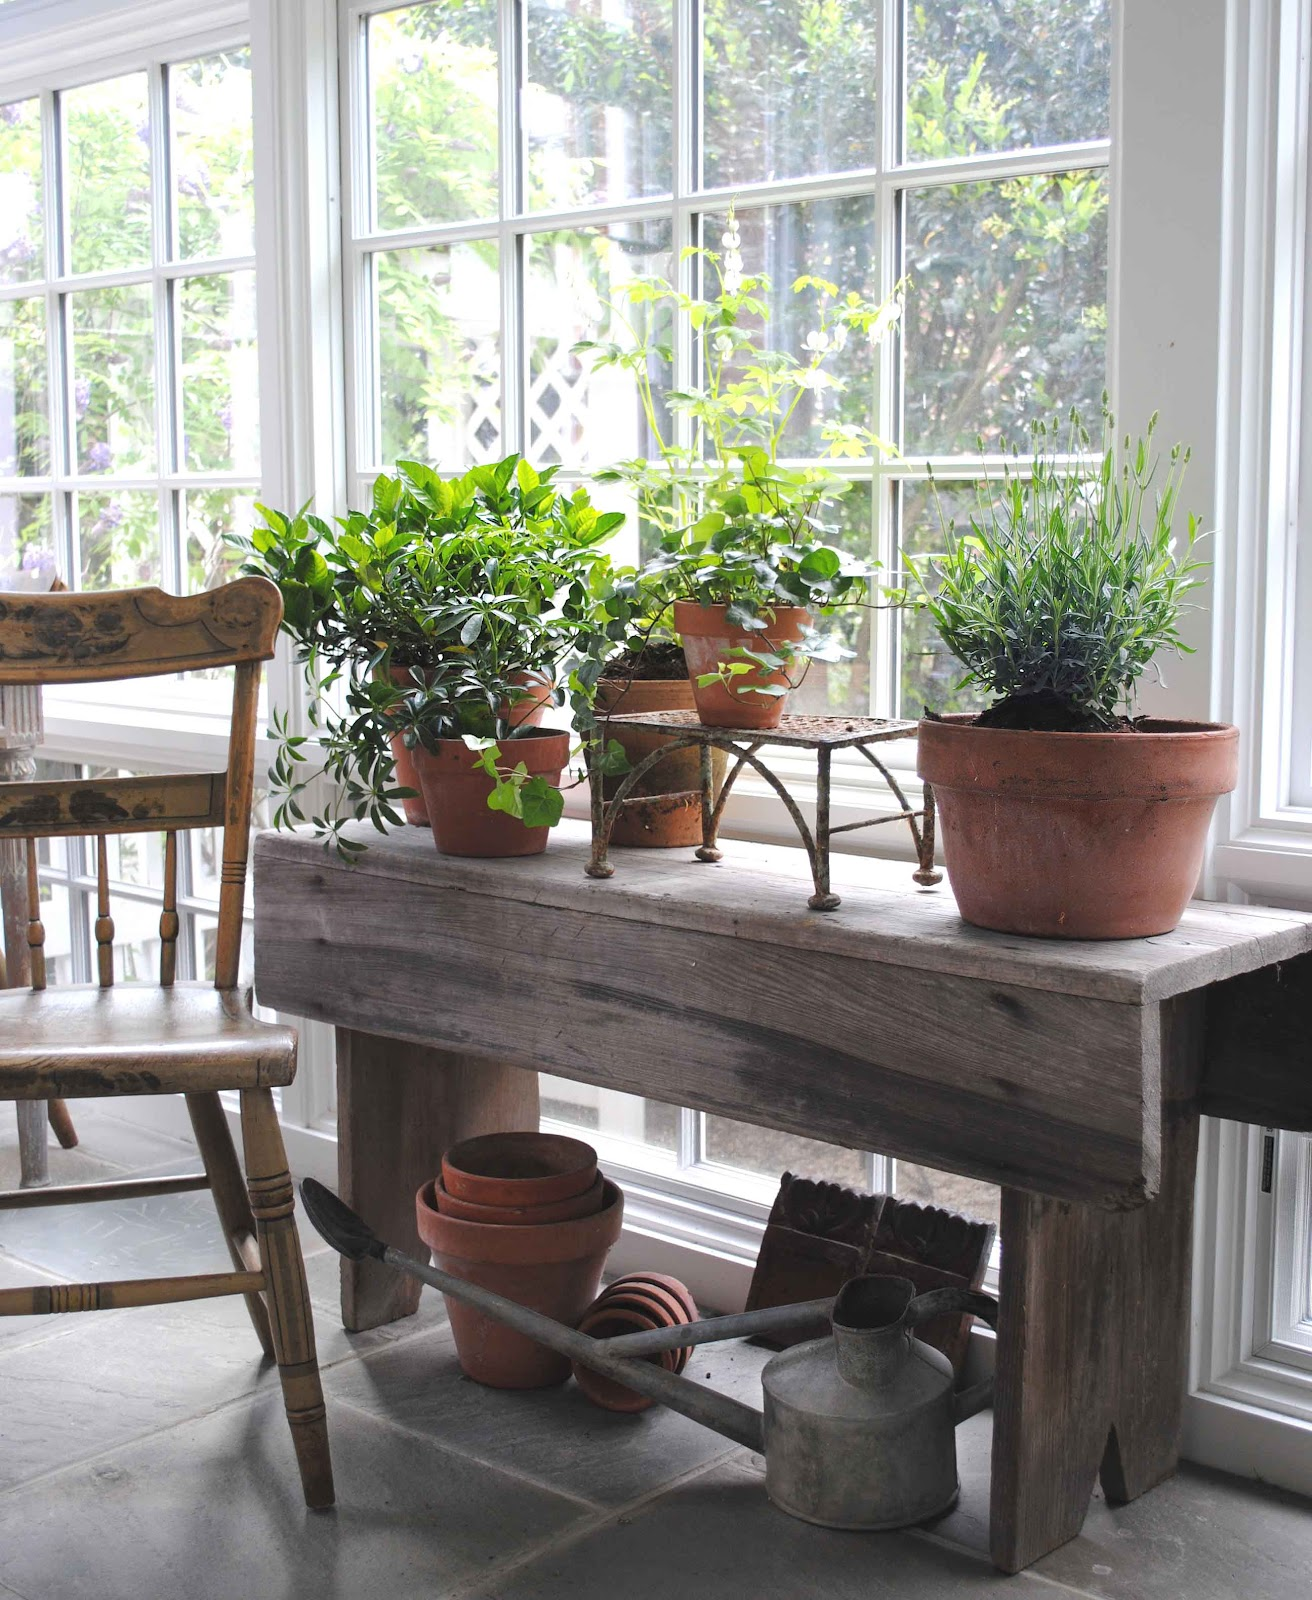 Swedish Cottage Style Adorable Of Early American painted chair next to primitive bench with potted herbs  Photos